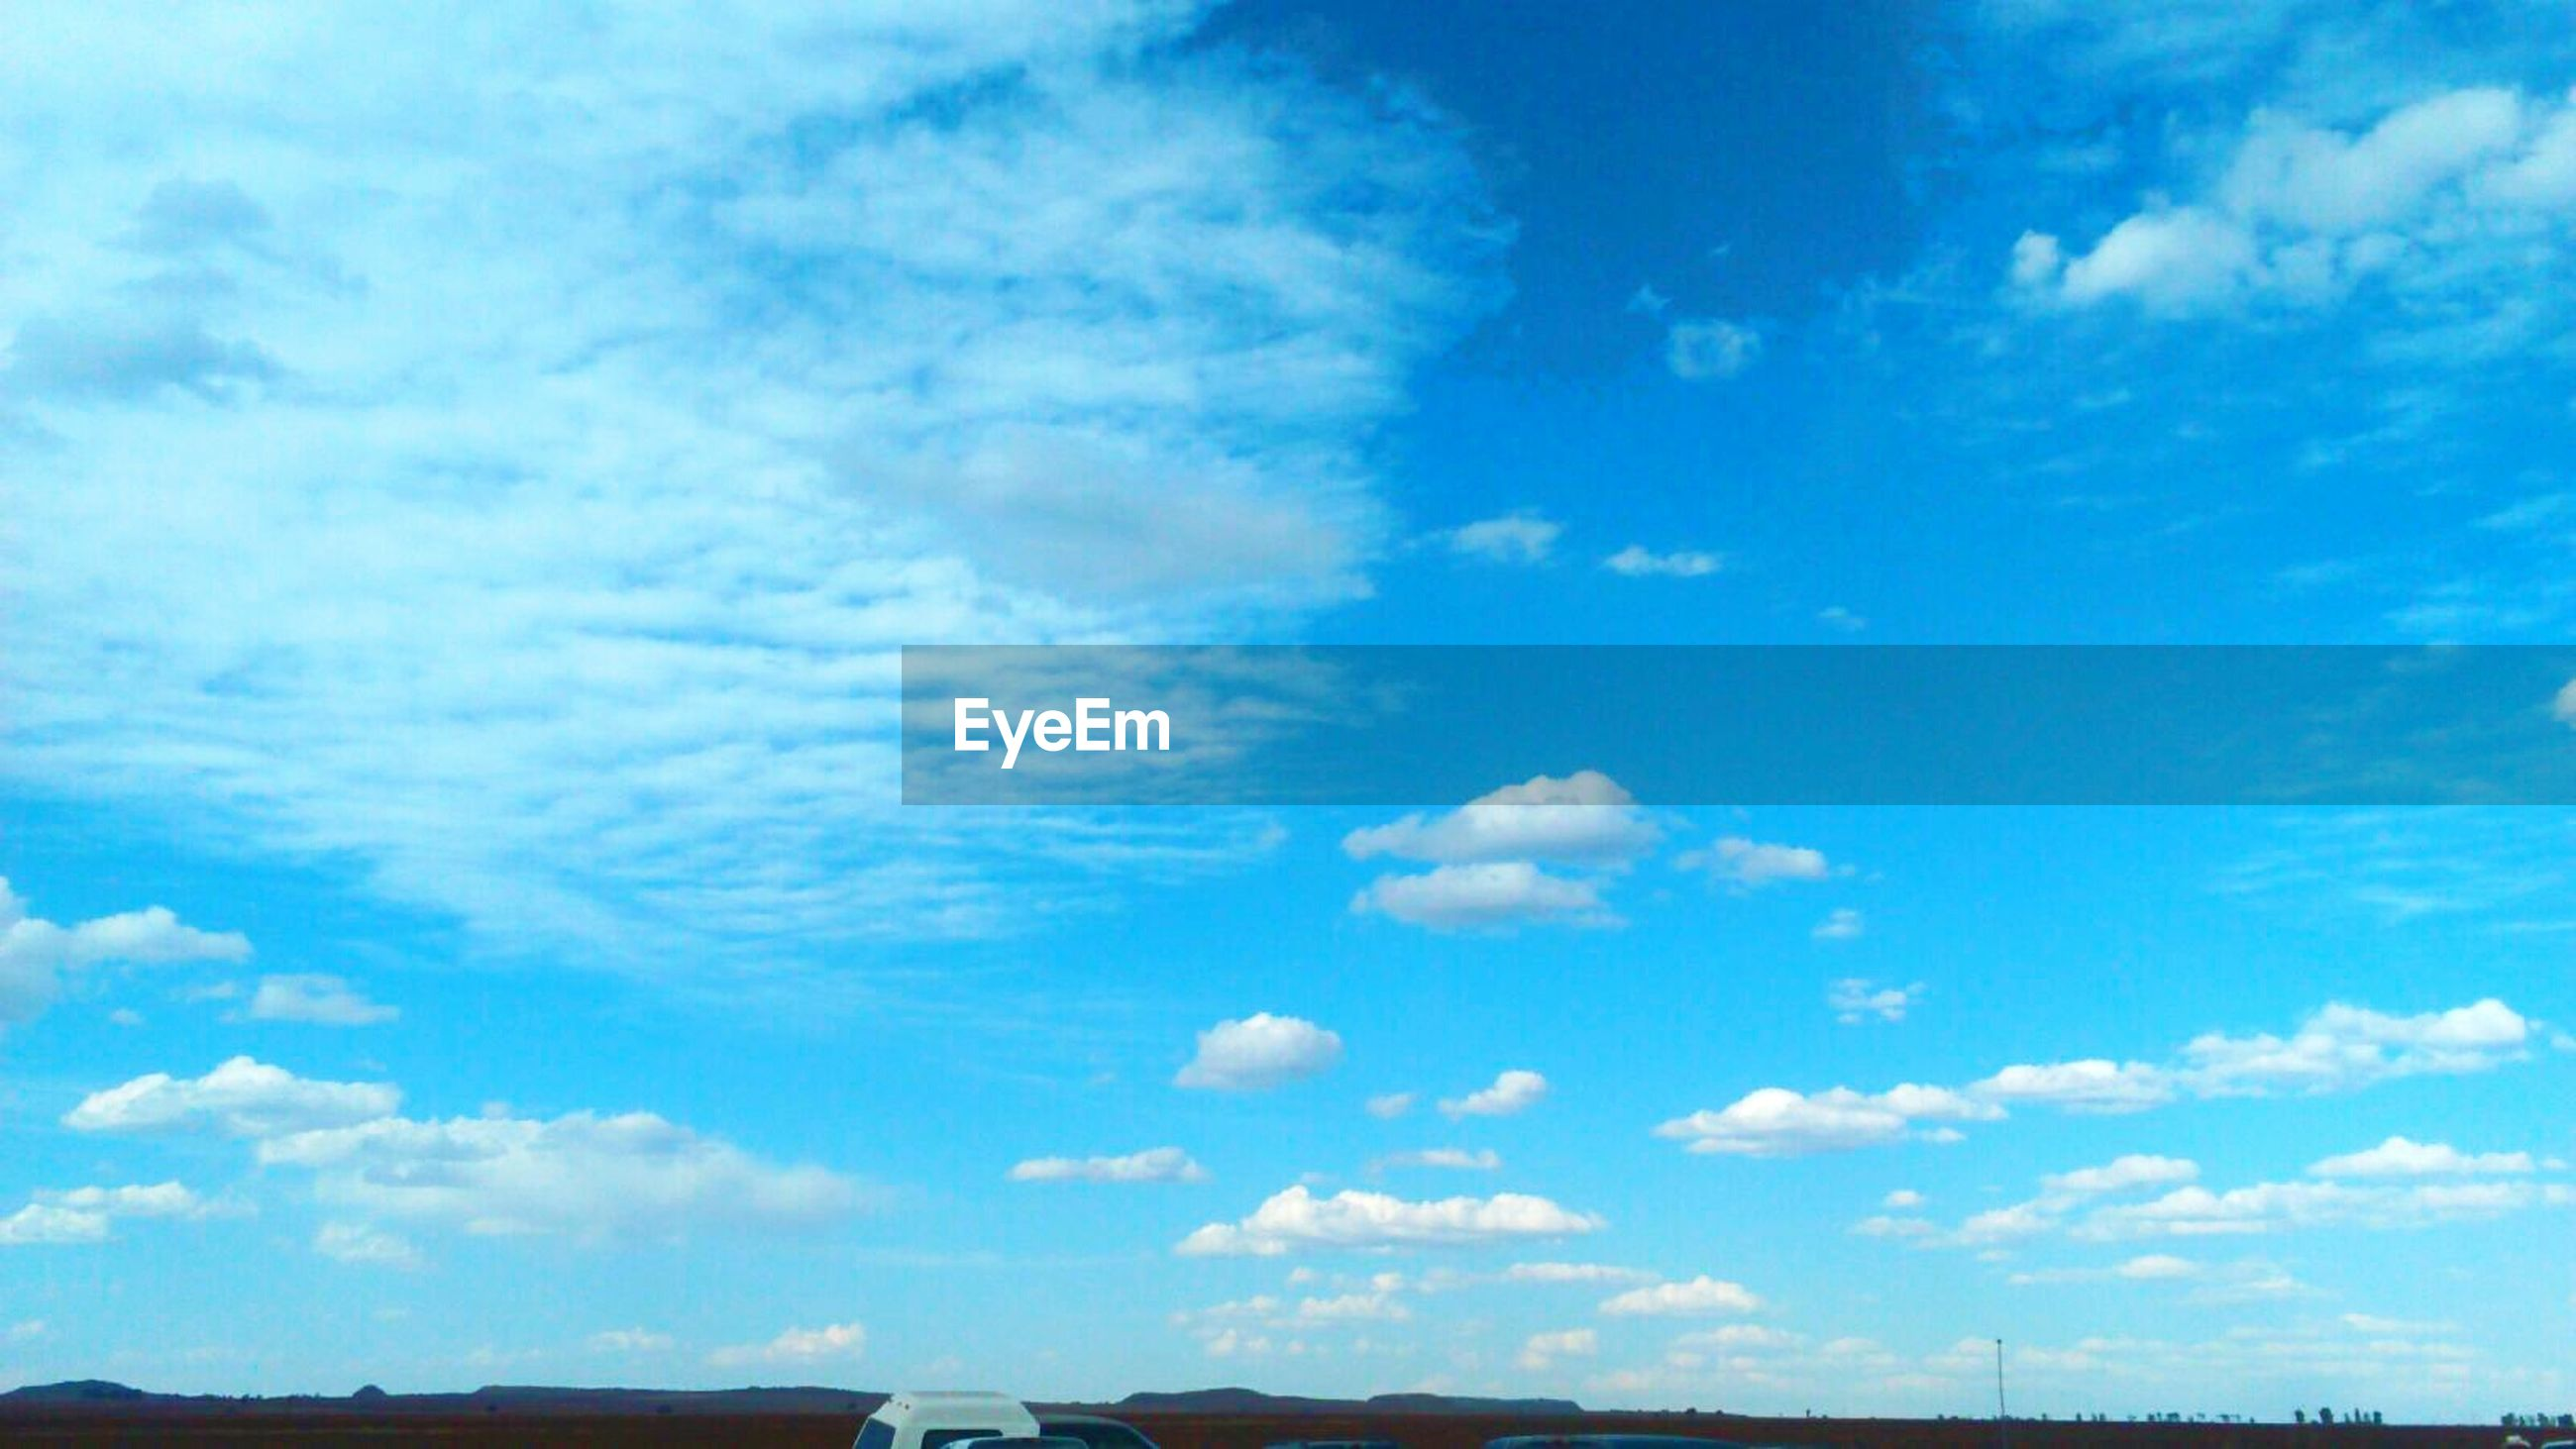 sky, blue, cloud - sky, beauty in nature, day, nature, scenics, no people, outdoors, tranquility, low angle view, backgrounds